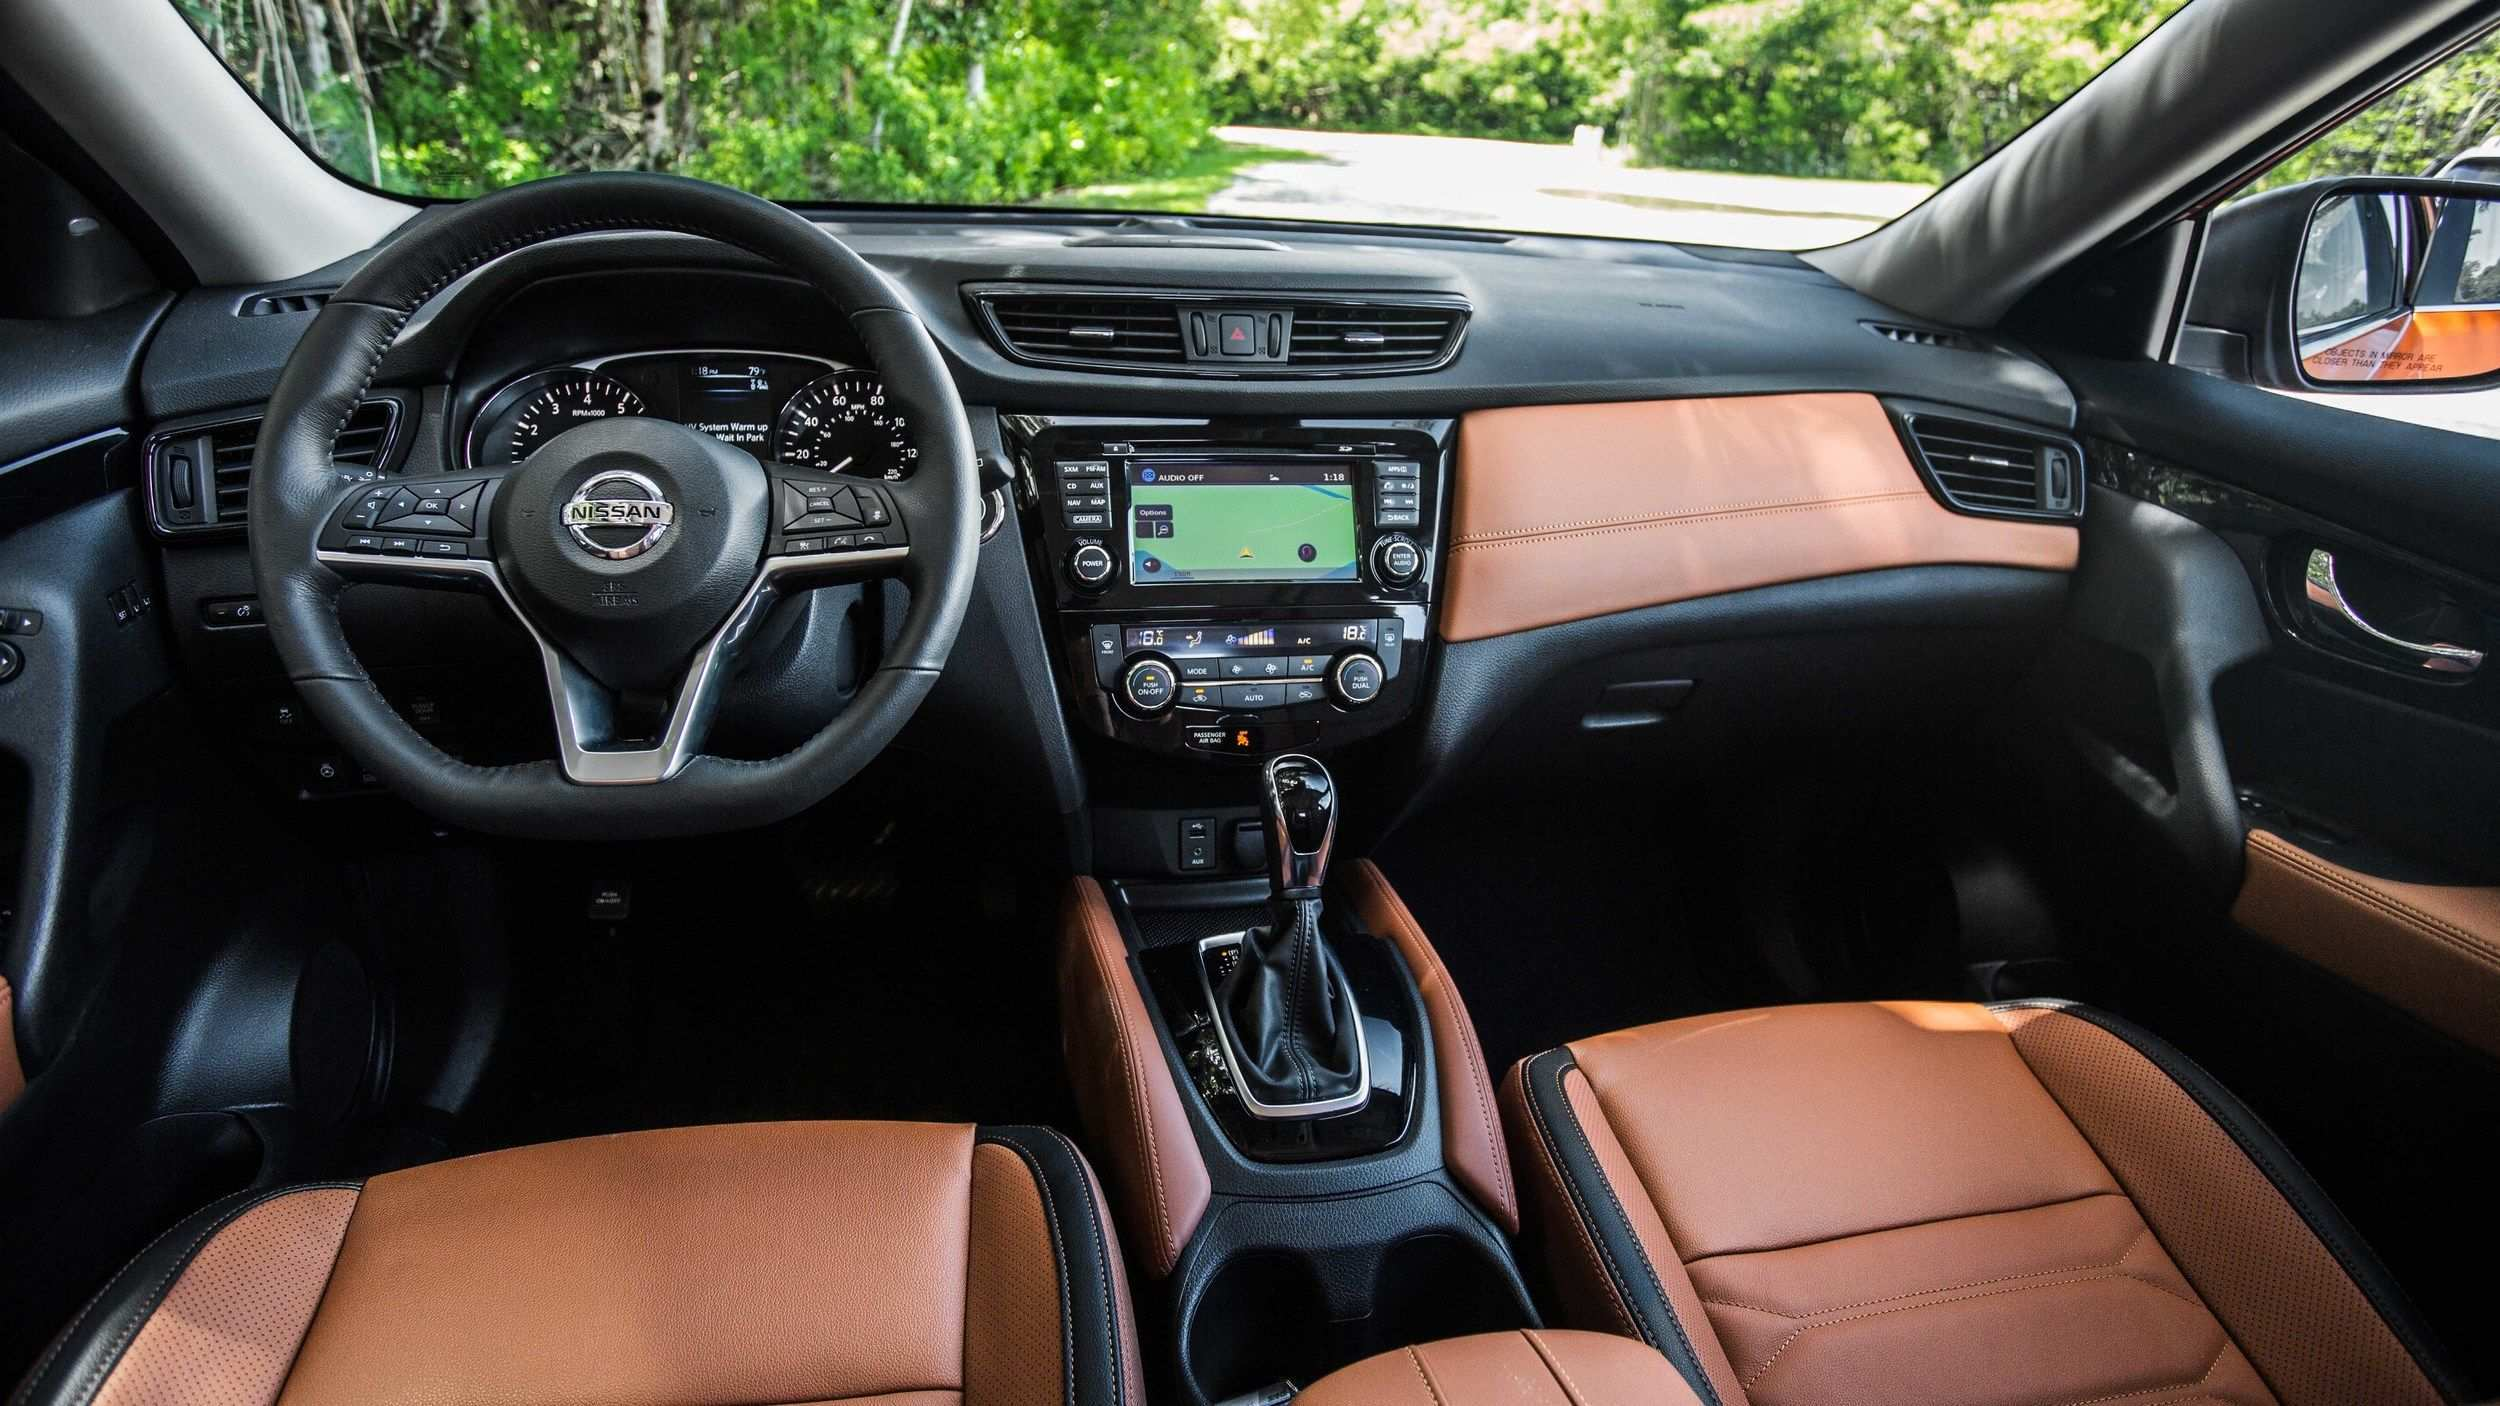 98 Best 2019 Nissan Rogue Engine Speed Test